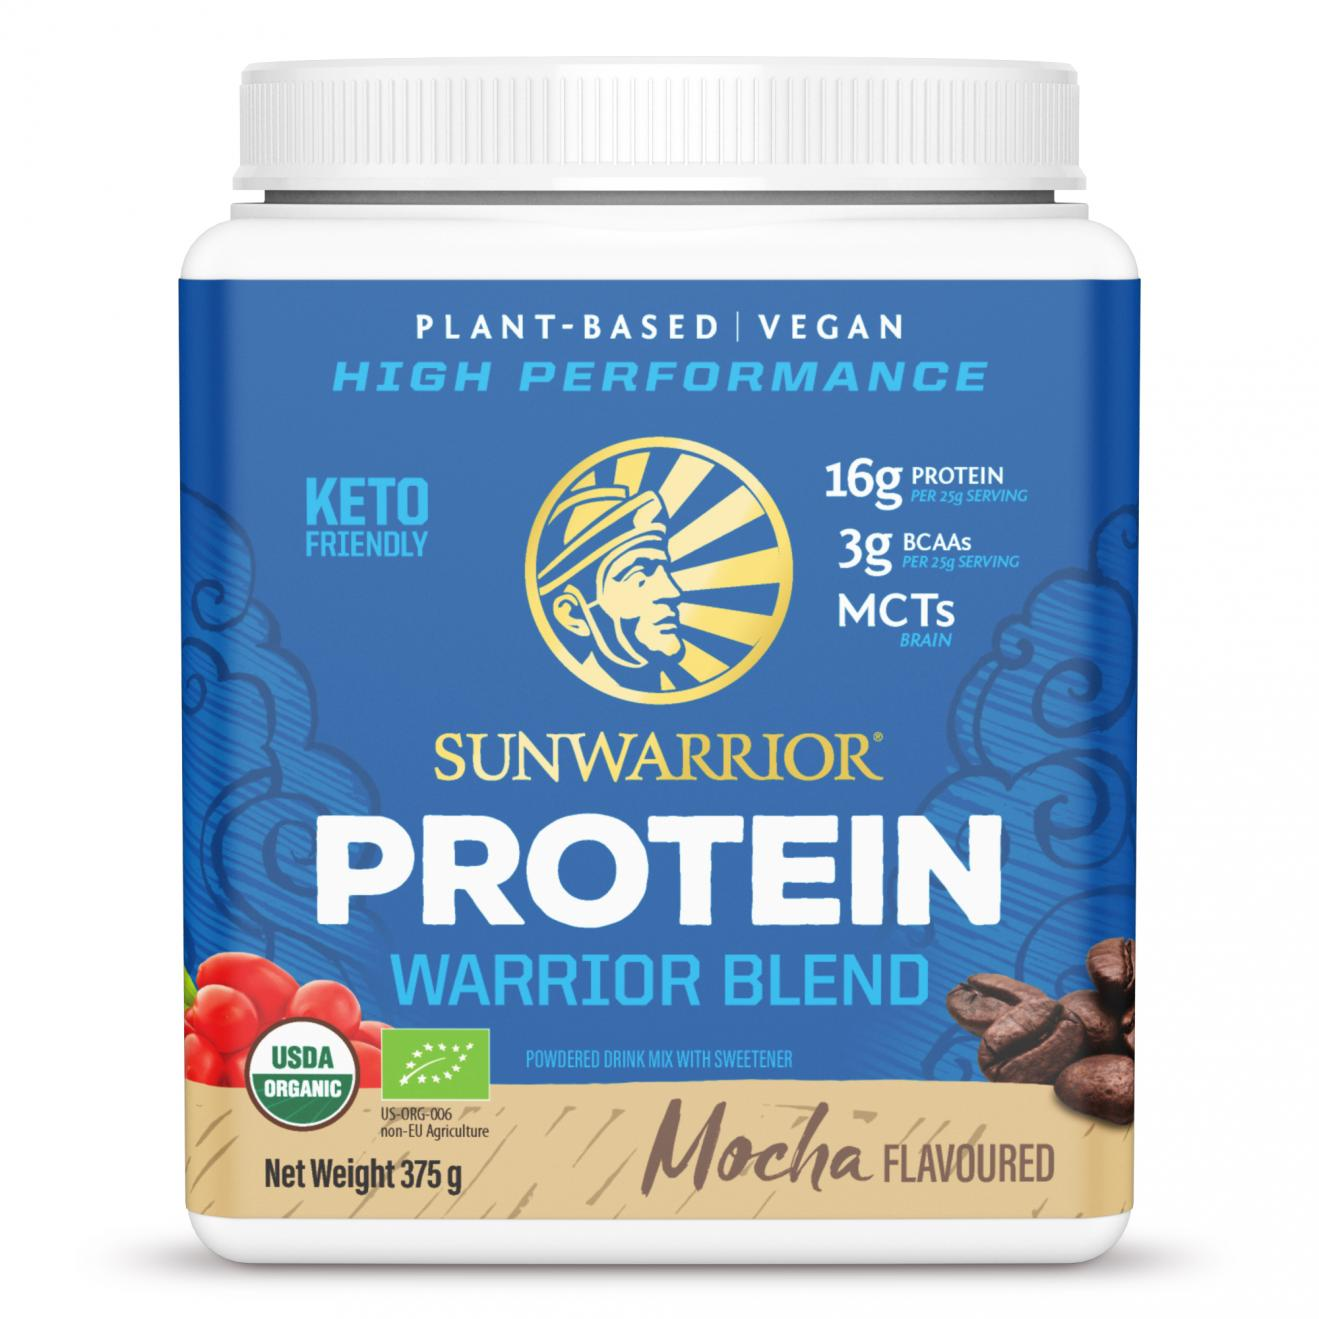 Protein Warrior Blend Mocha 375g (Blue Tub) (Currently Unavailable)